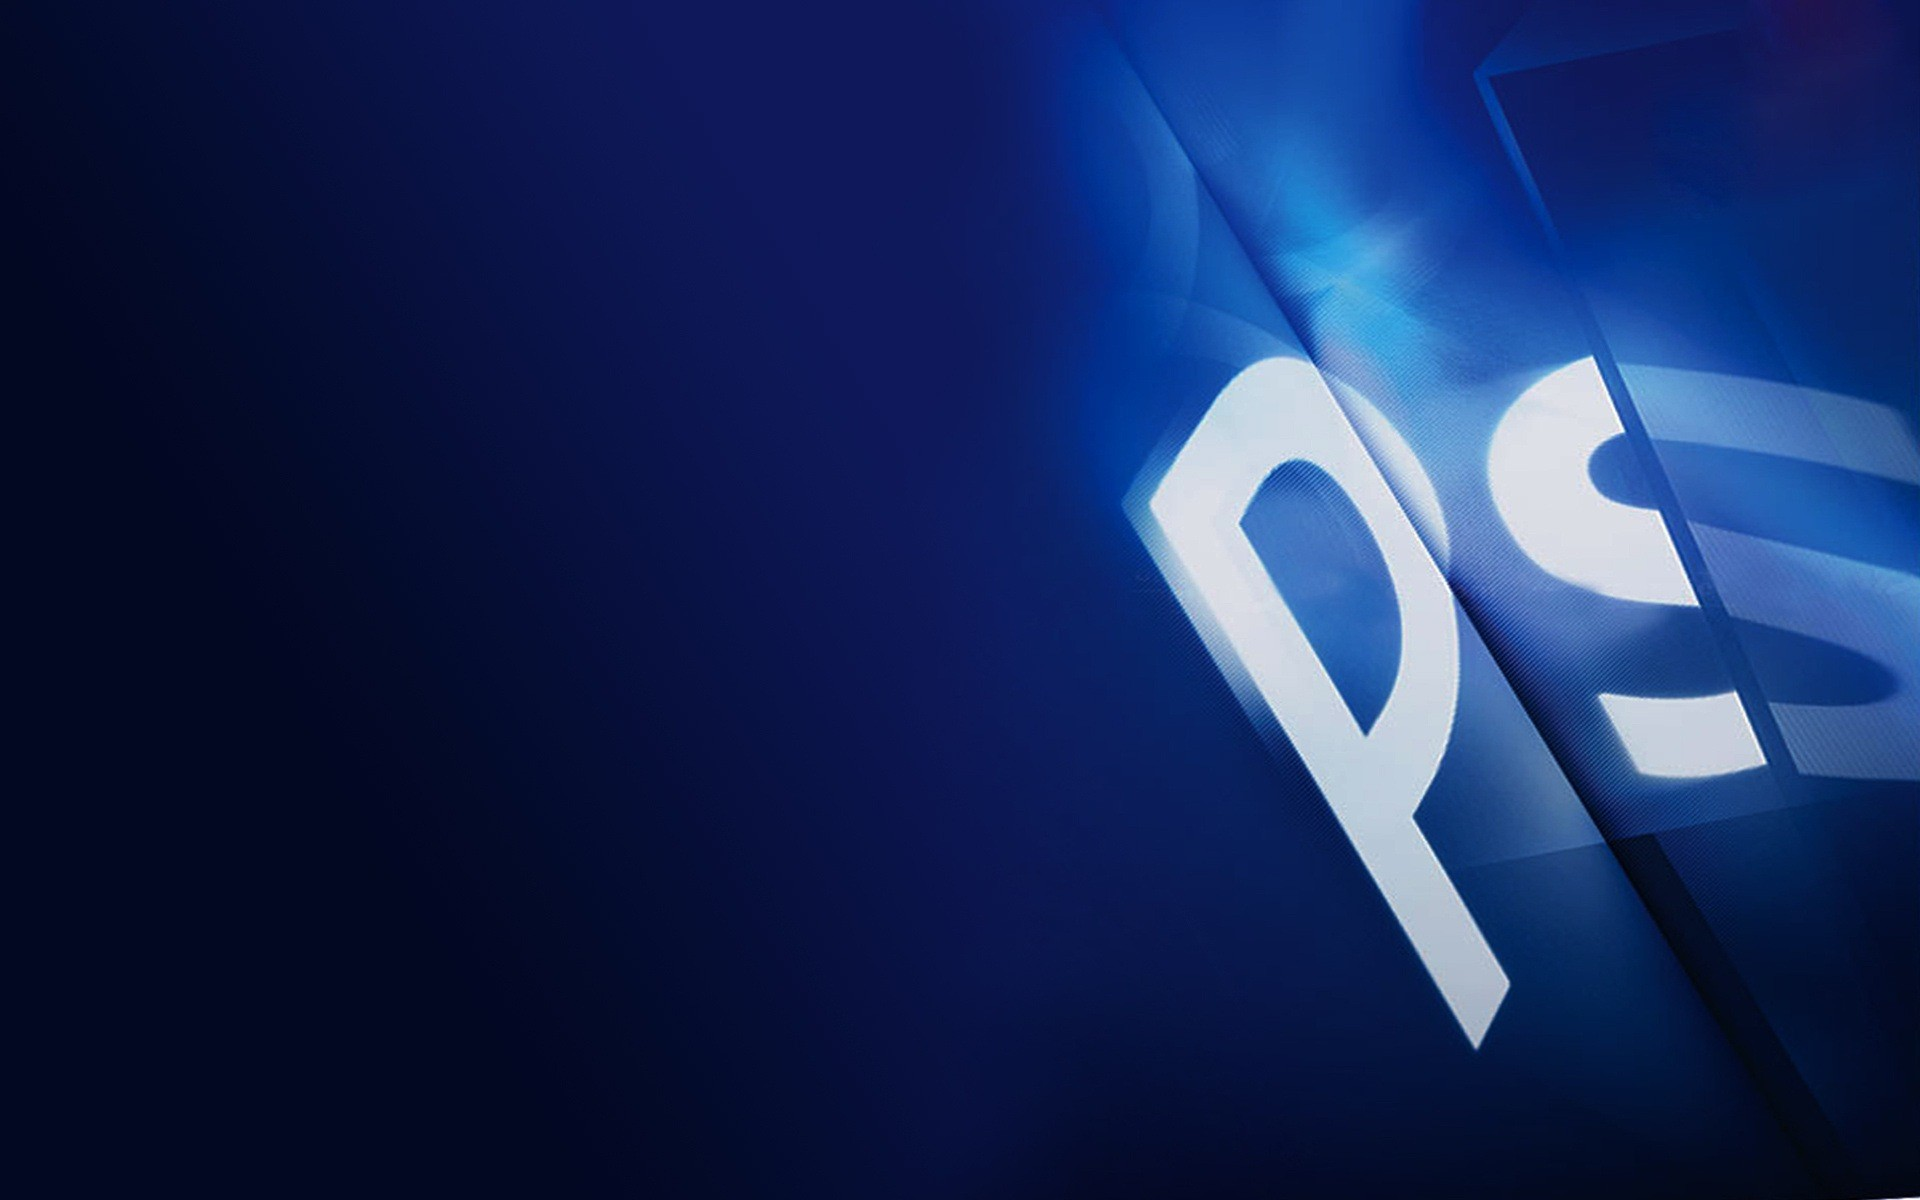 adobe photoshop full hd wallpaper and background image